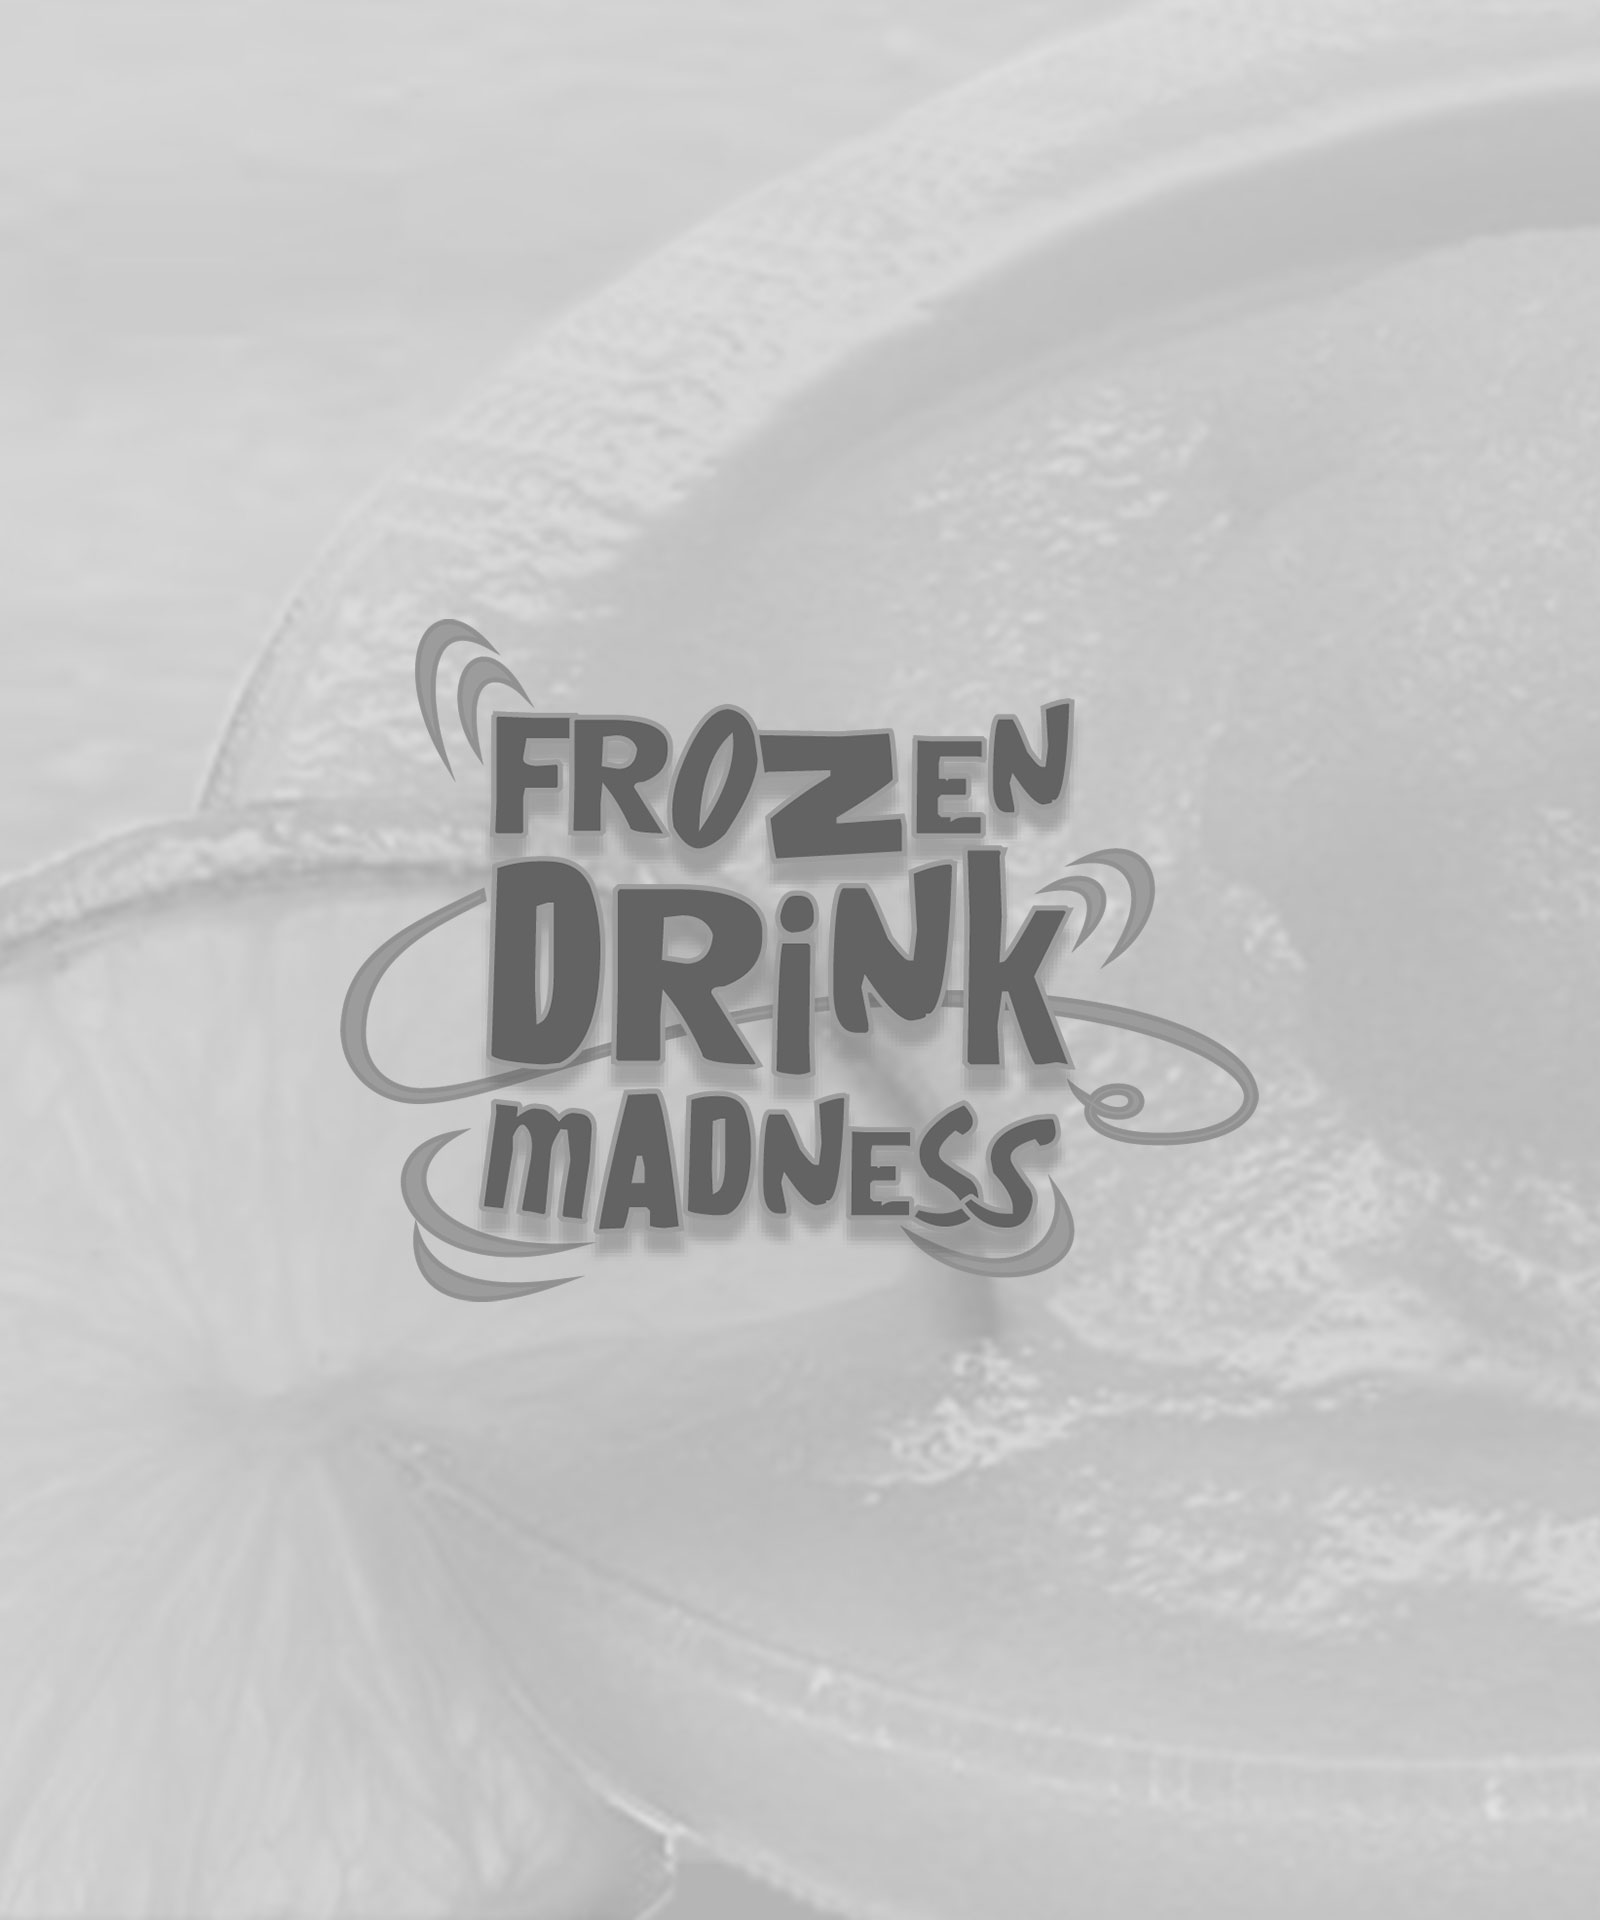 Our Work – Frozen Drink Madness